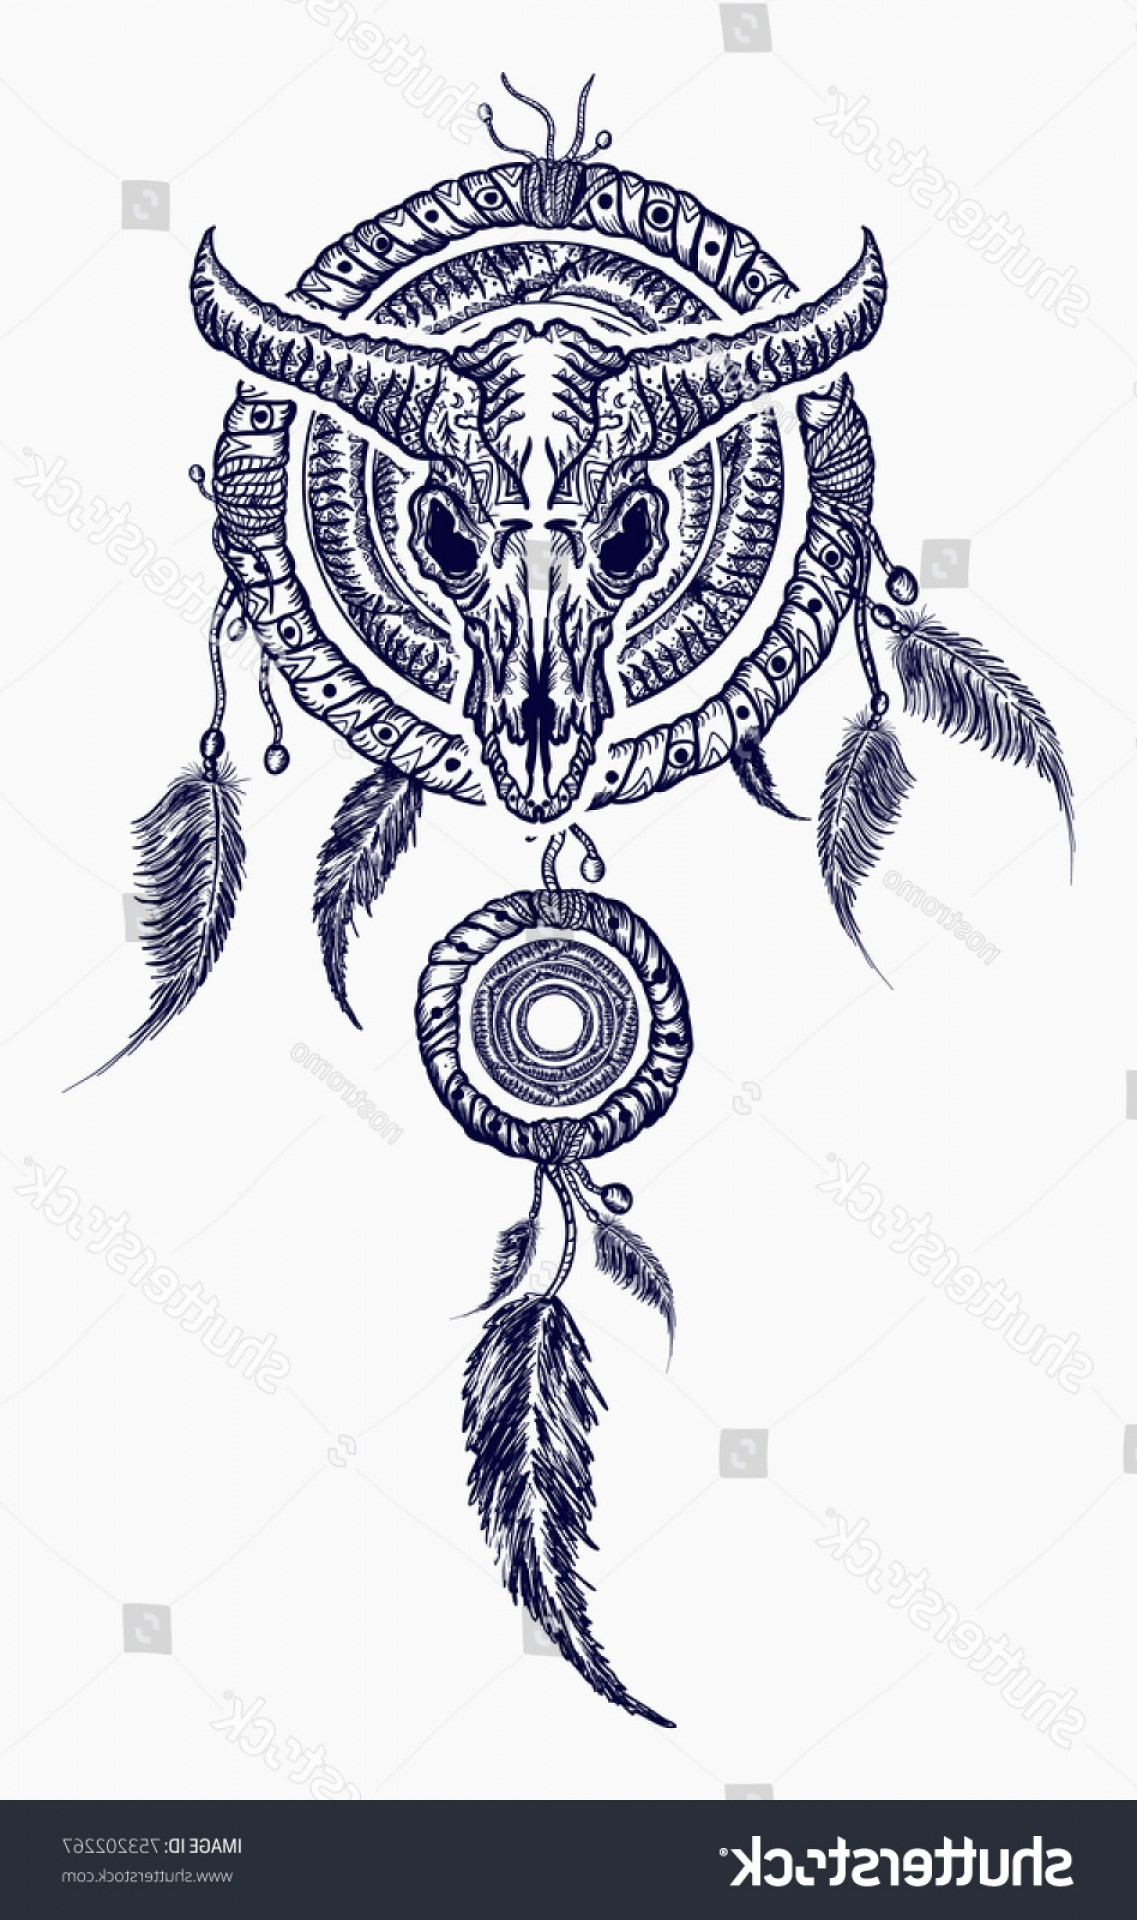 Dreamcatcher Tattoo Vector: Bison Skull Indian Dream Catcher Tattoo